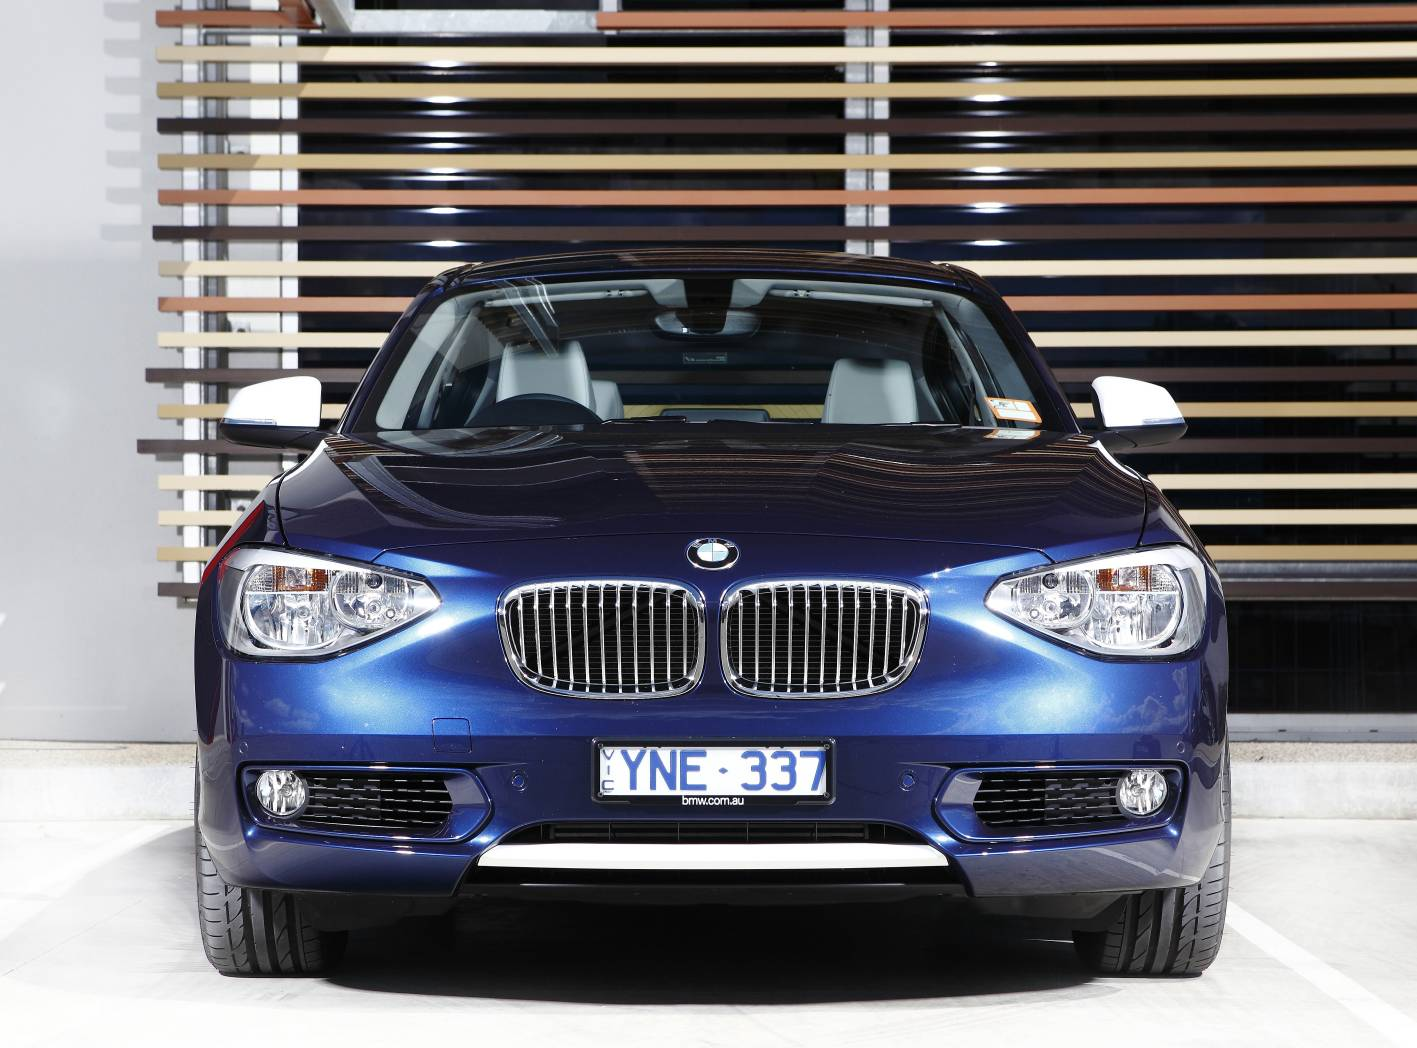 2012_bmw_1_series_press_photos_02_118i_sport_07